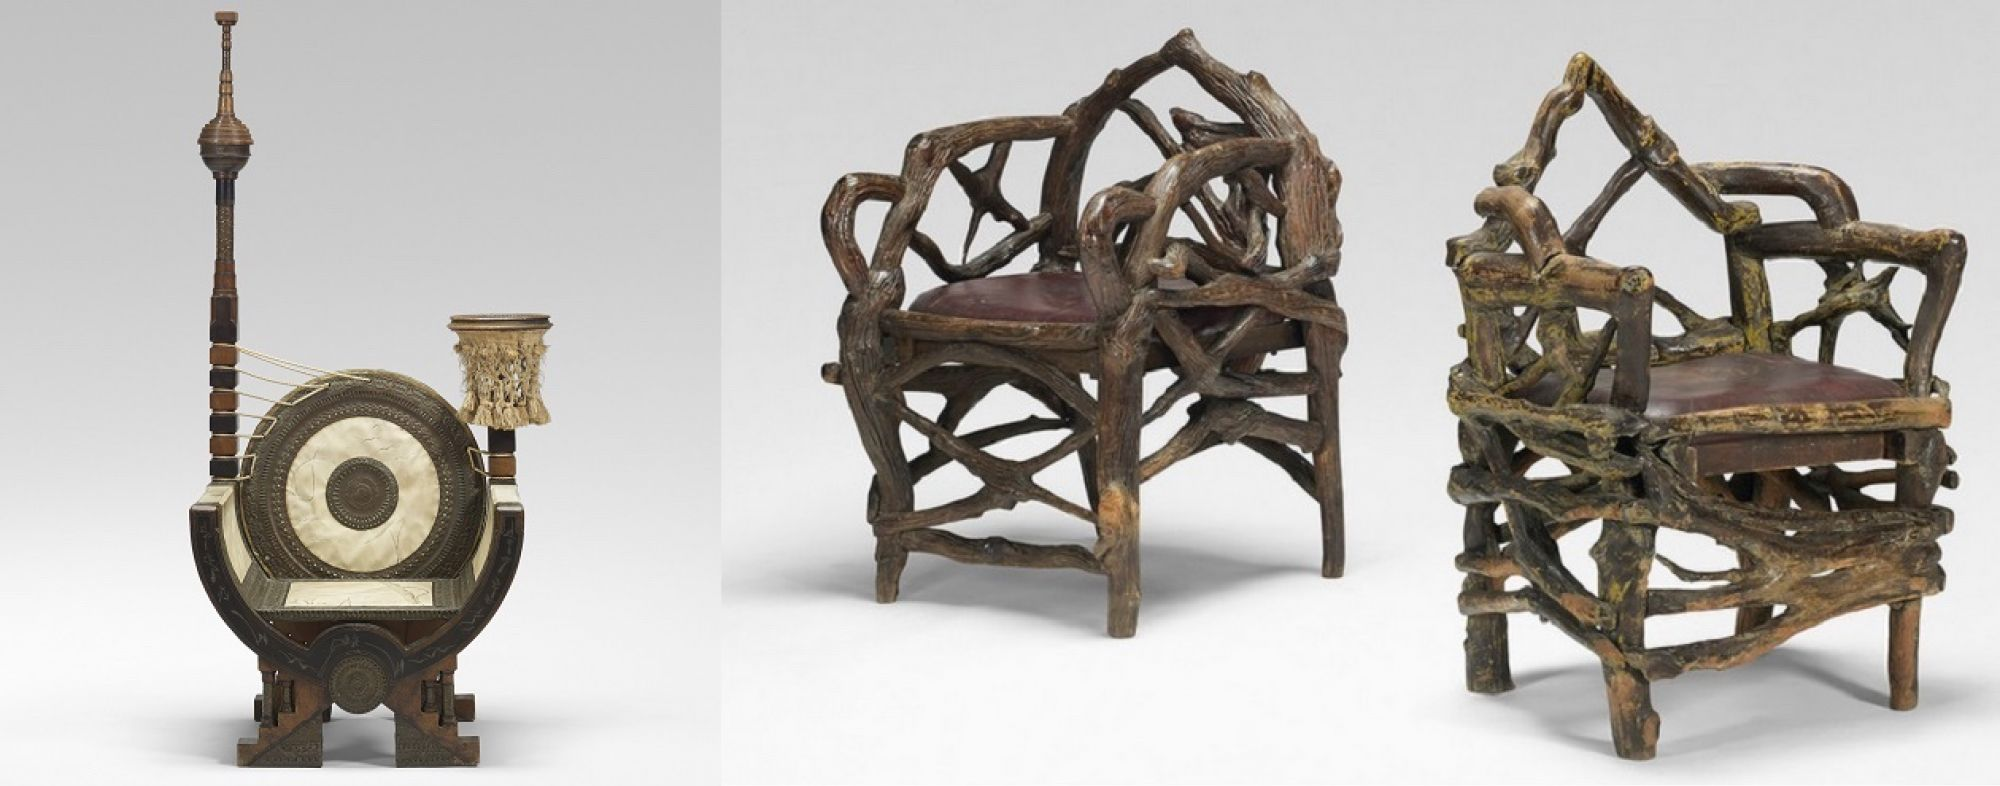 Rarities in the sale include Carlo Bugatti's Curule chair and a pair of chairs from Al Capone's Wisconsin retreat.